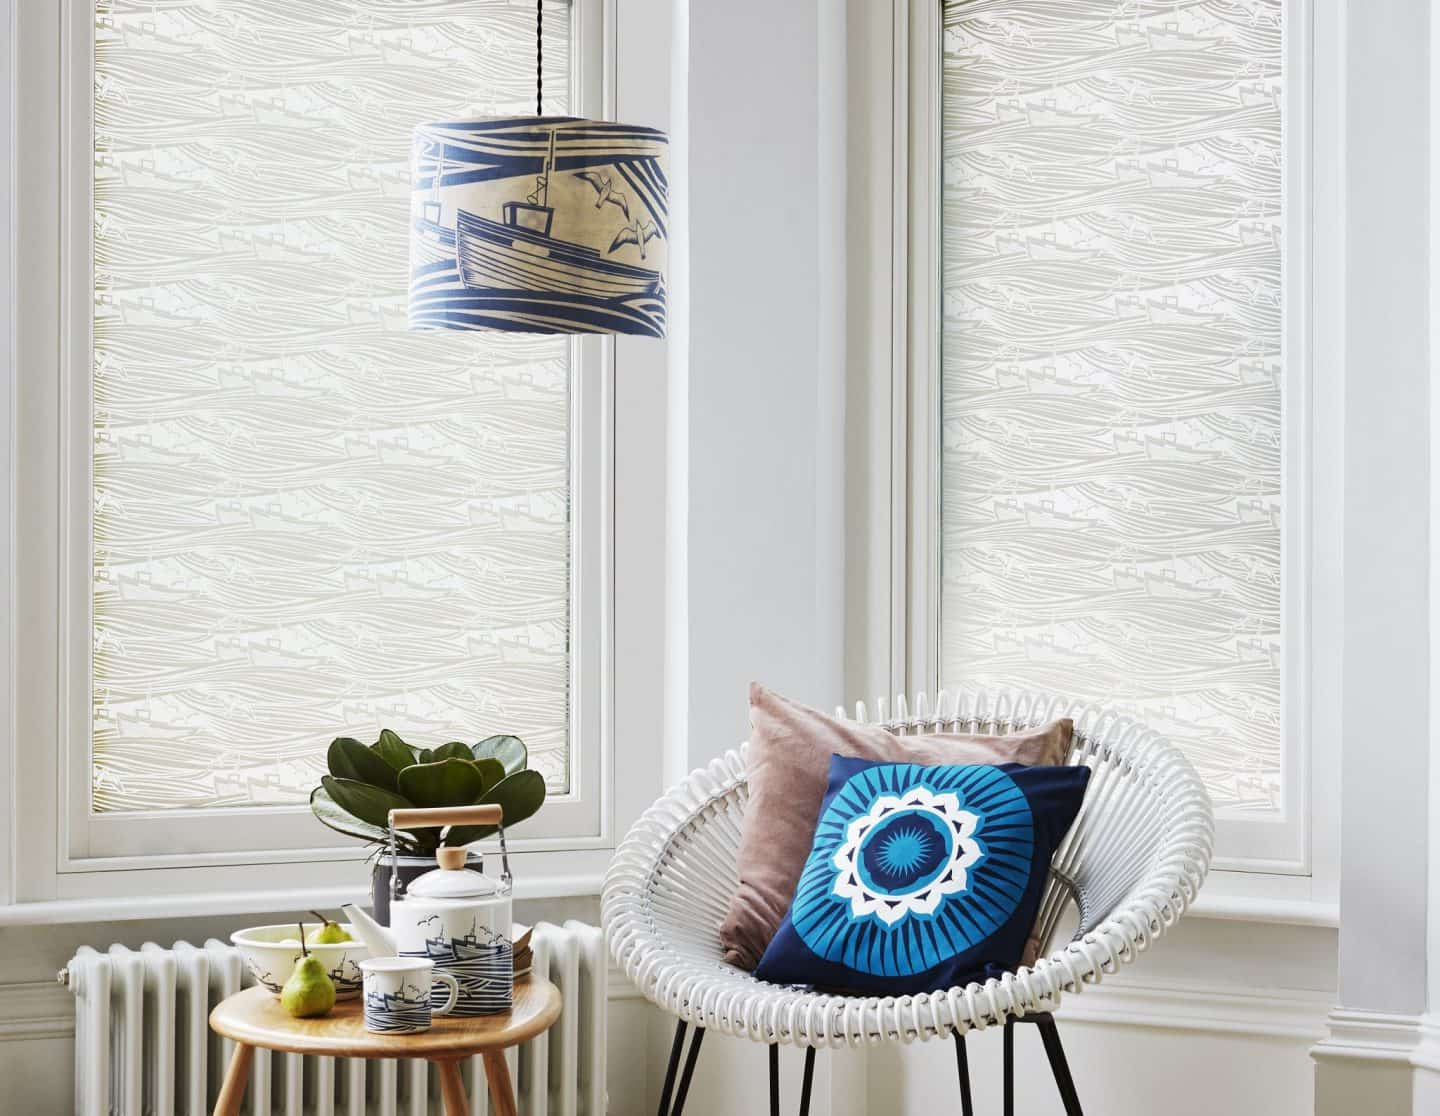 Decorative Window Film -The Window Film Company - Mini Moderns - Whitby